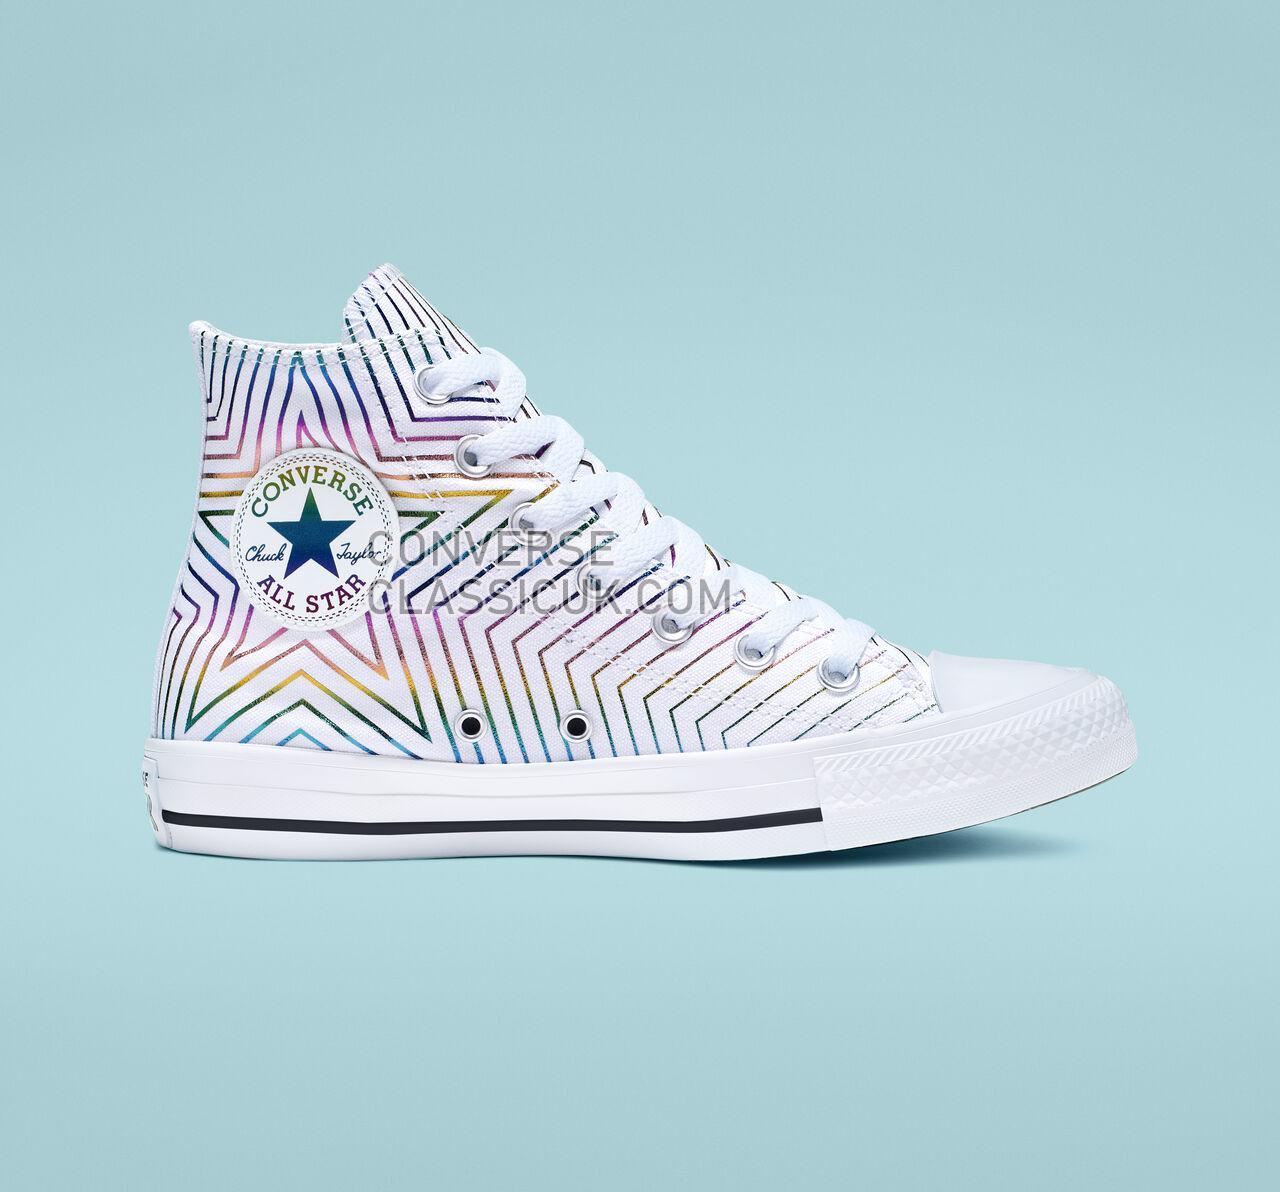 Converse Chuck Taylor All Star Exploding Star High Top Womens 565396F White/Black/White Shoes